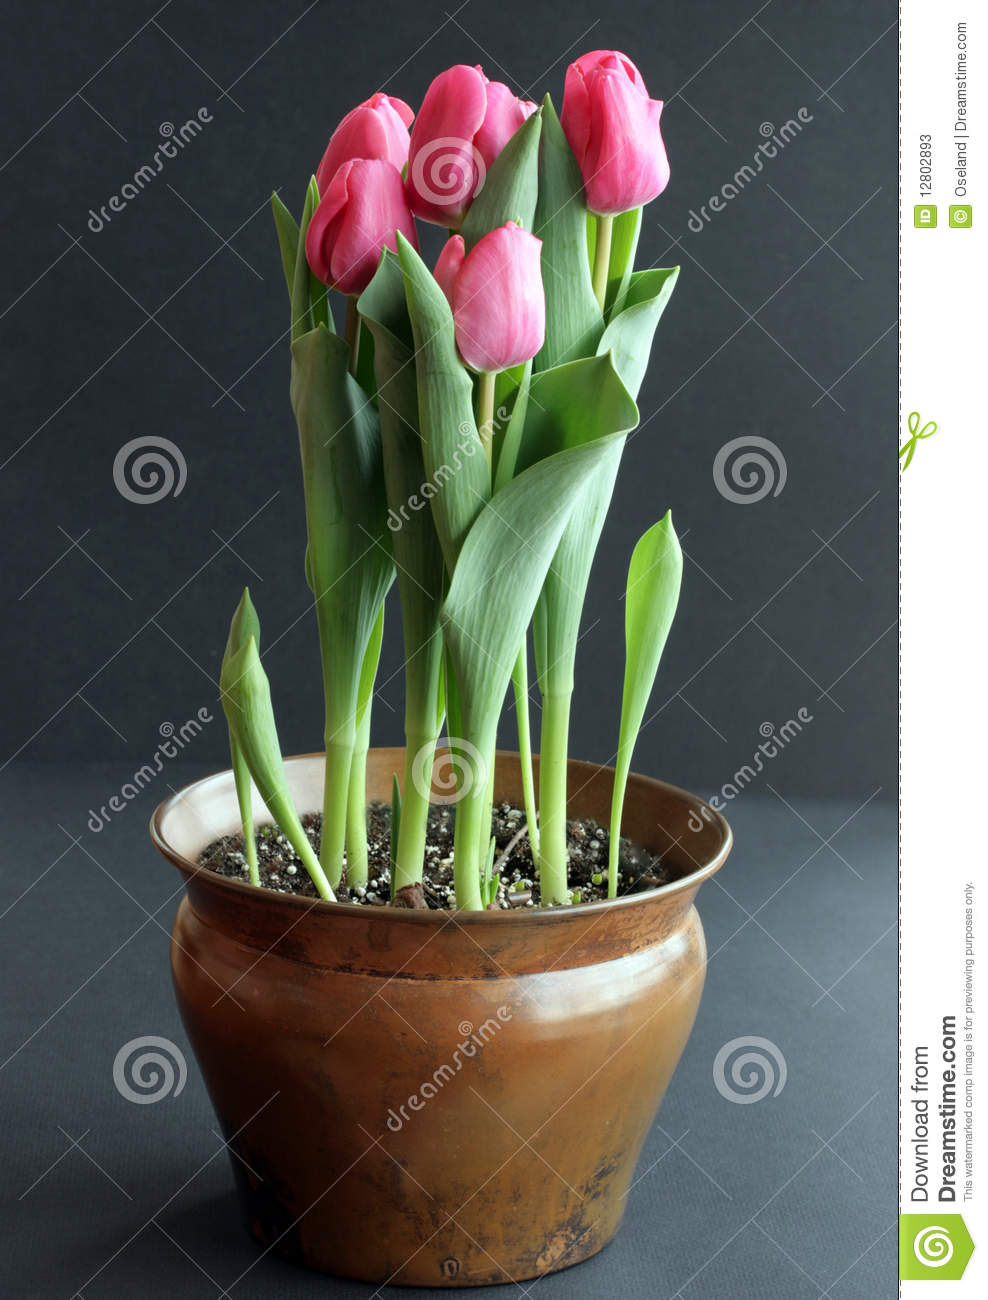 Tulips cor-de-rosa no recipiente